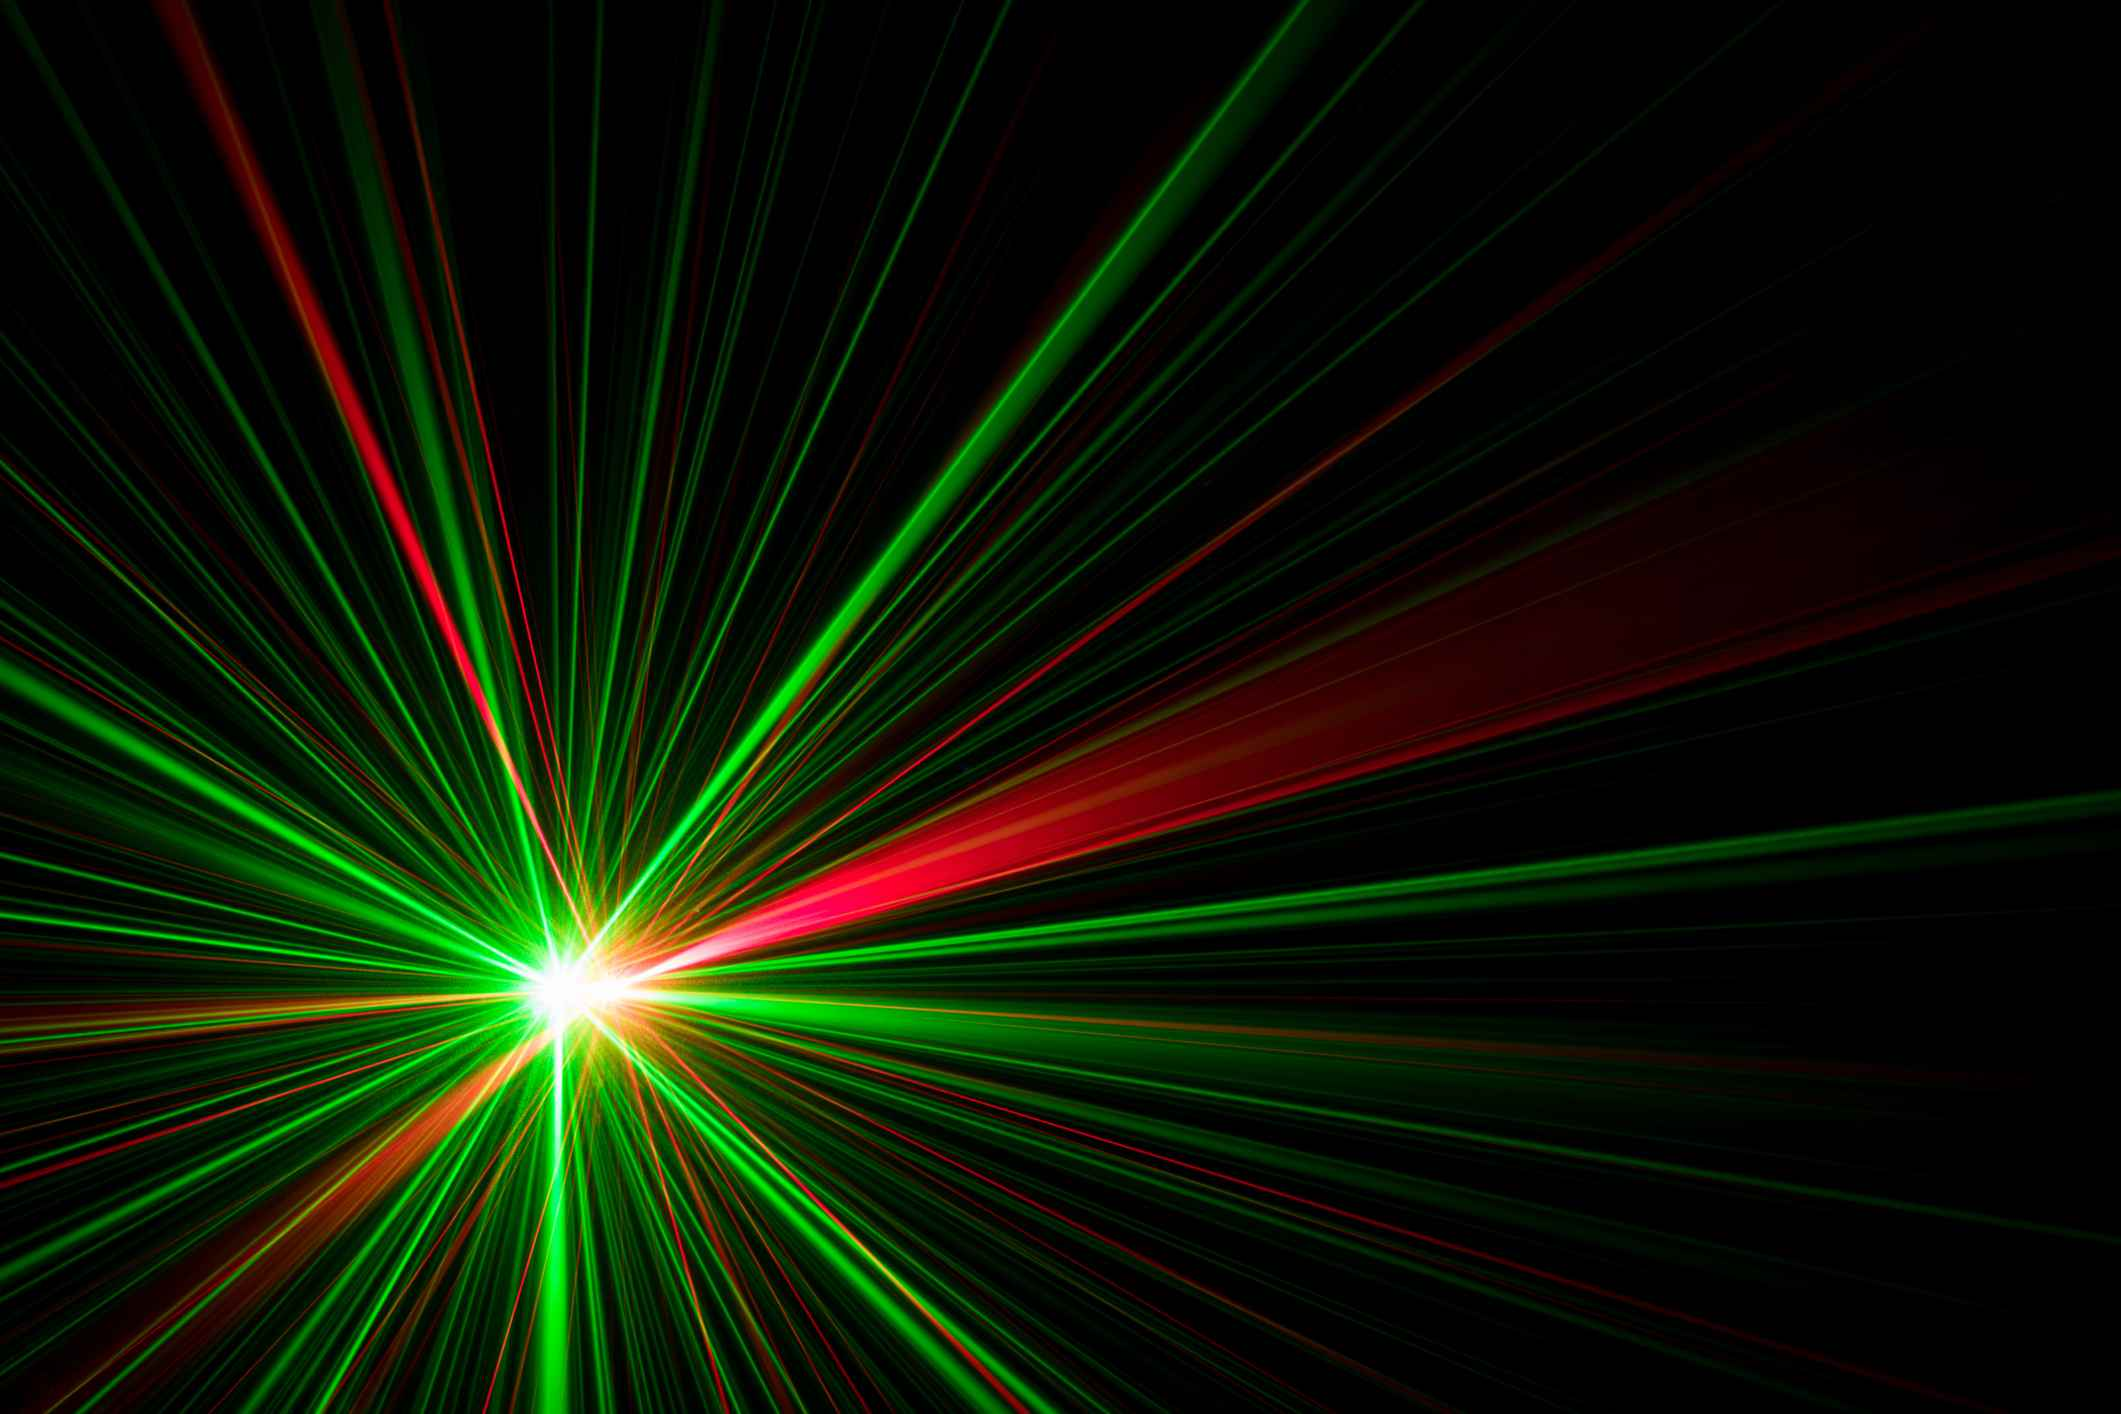 Image of Red and Green Lasers